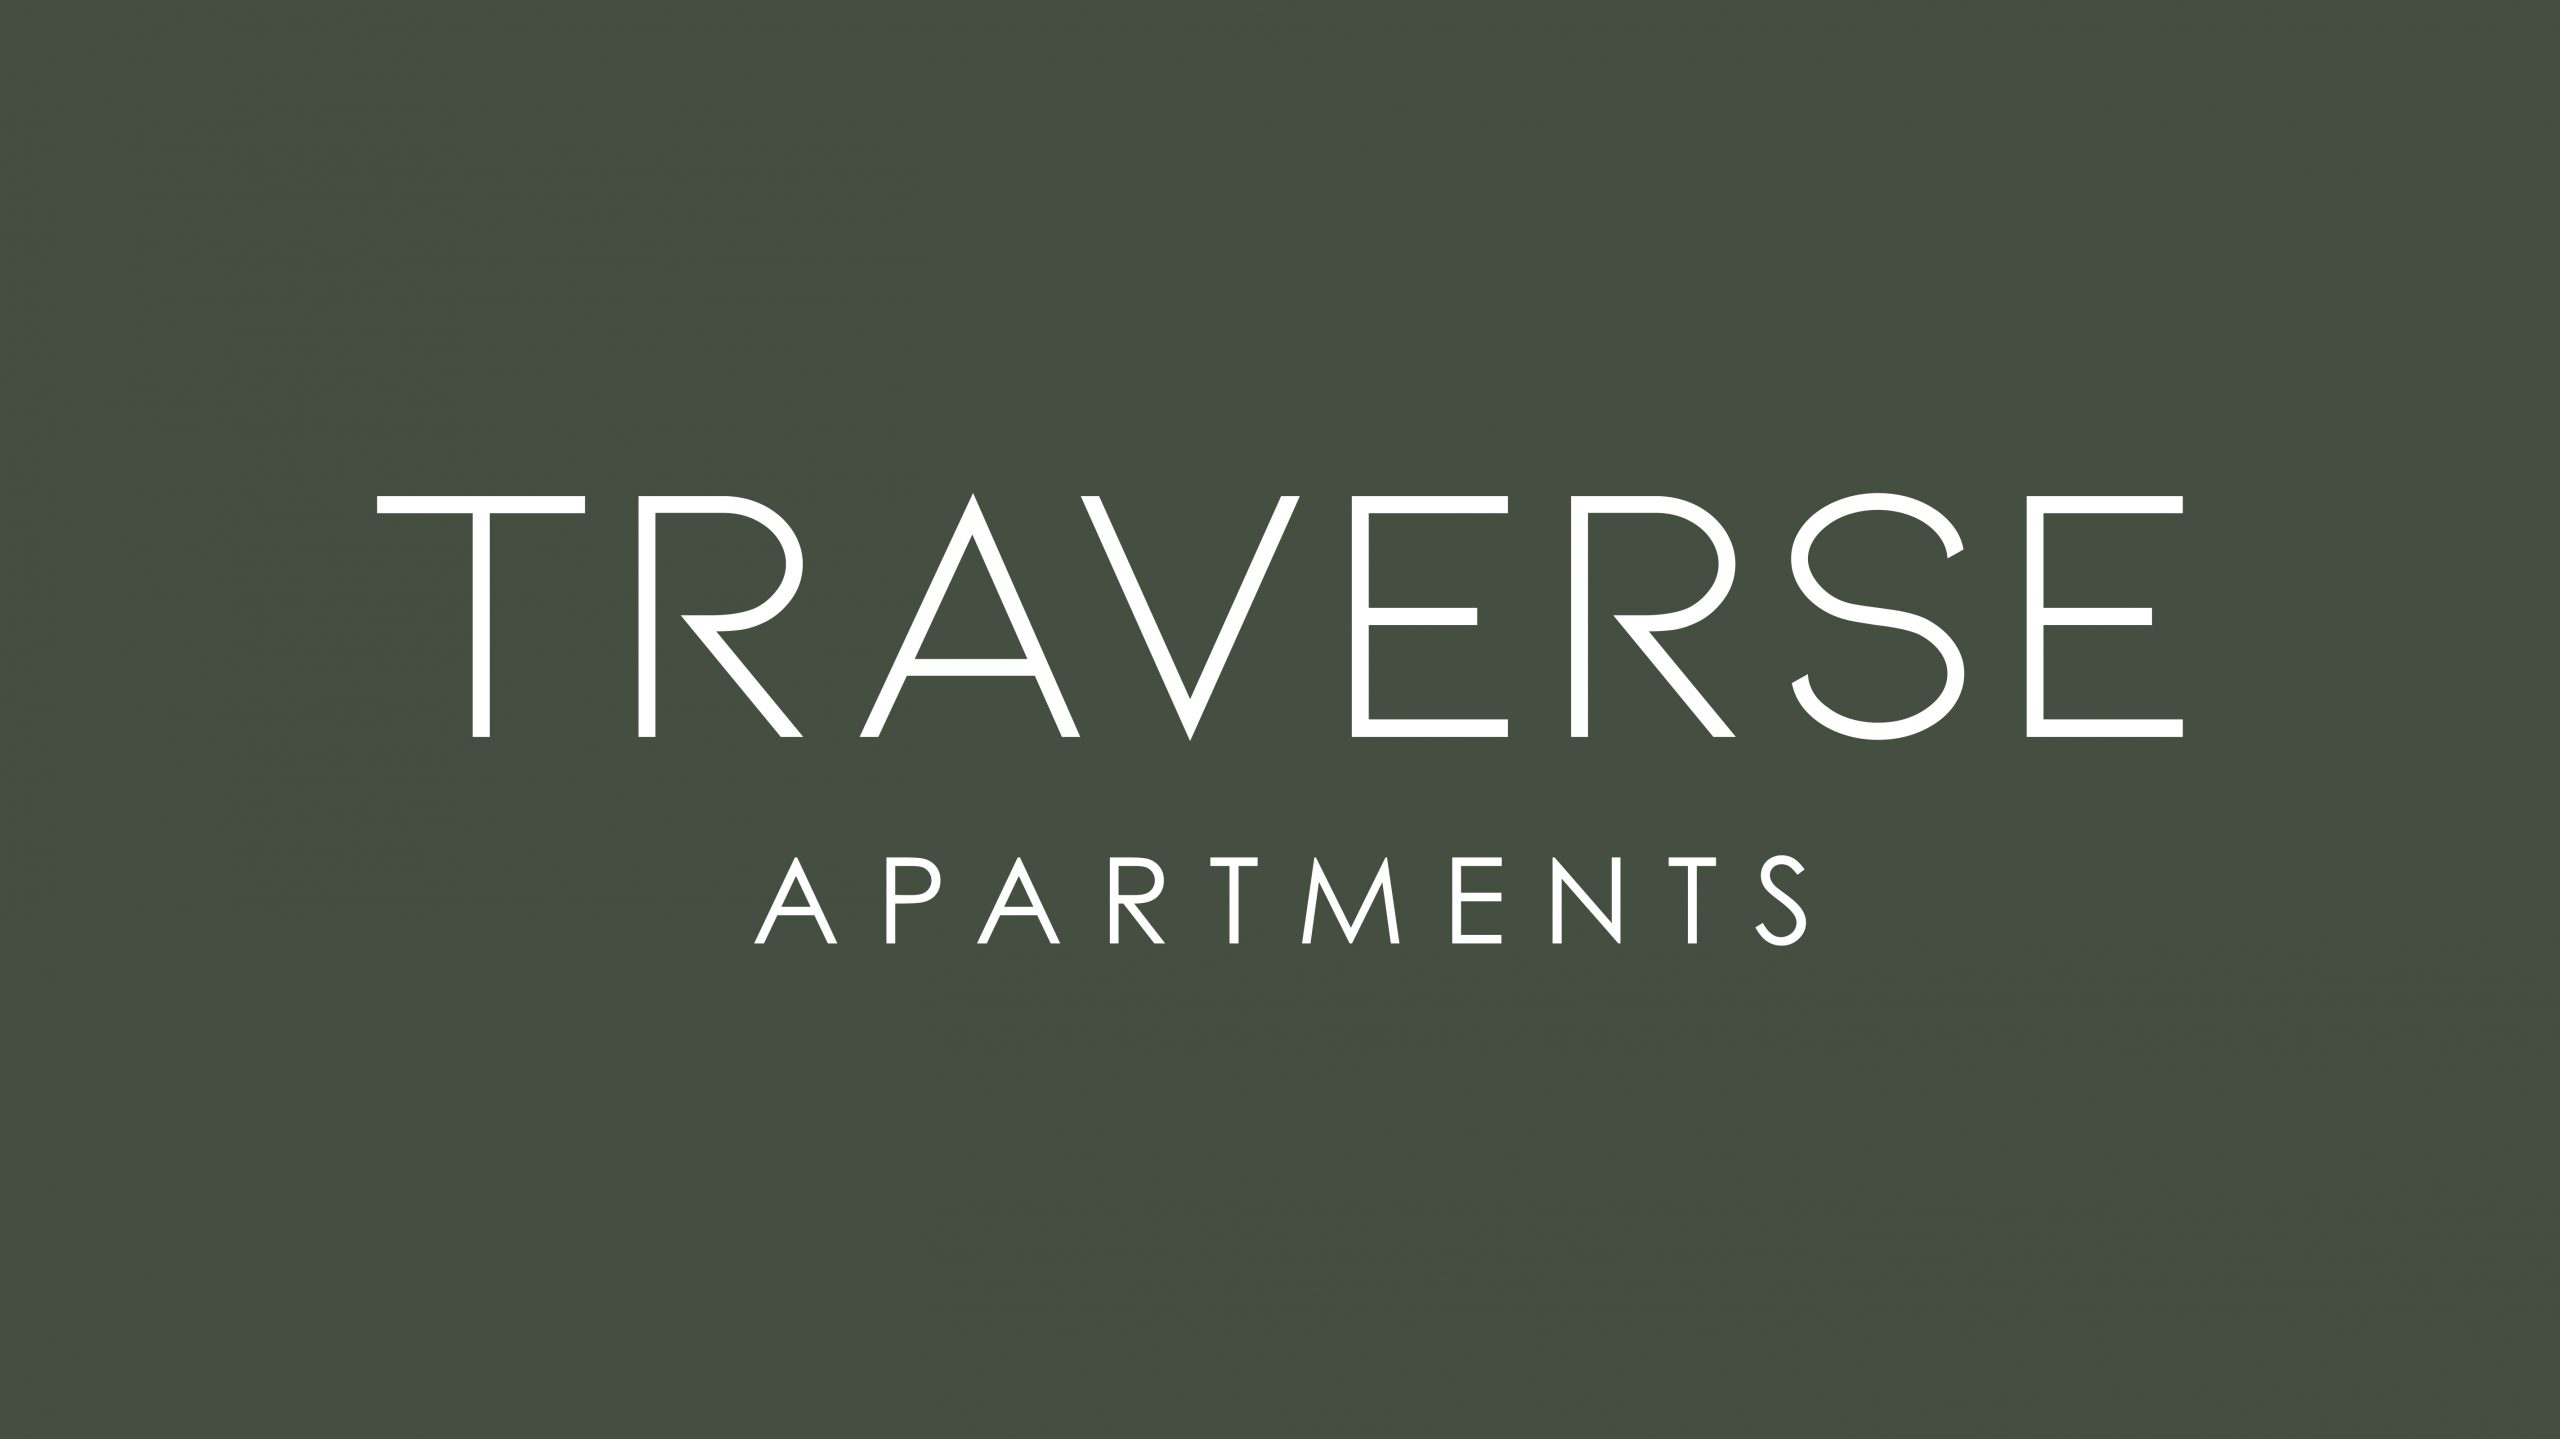 Traverse Apartments